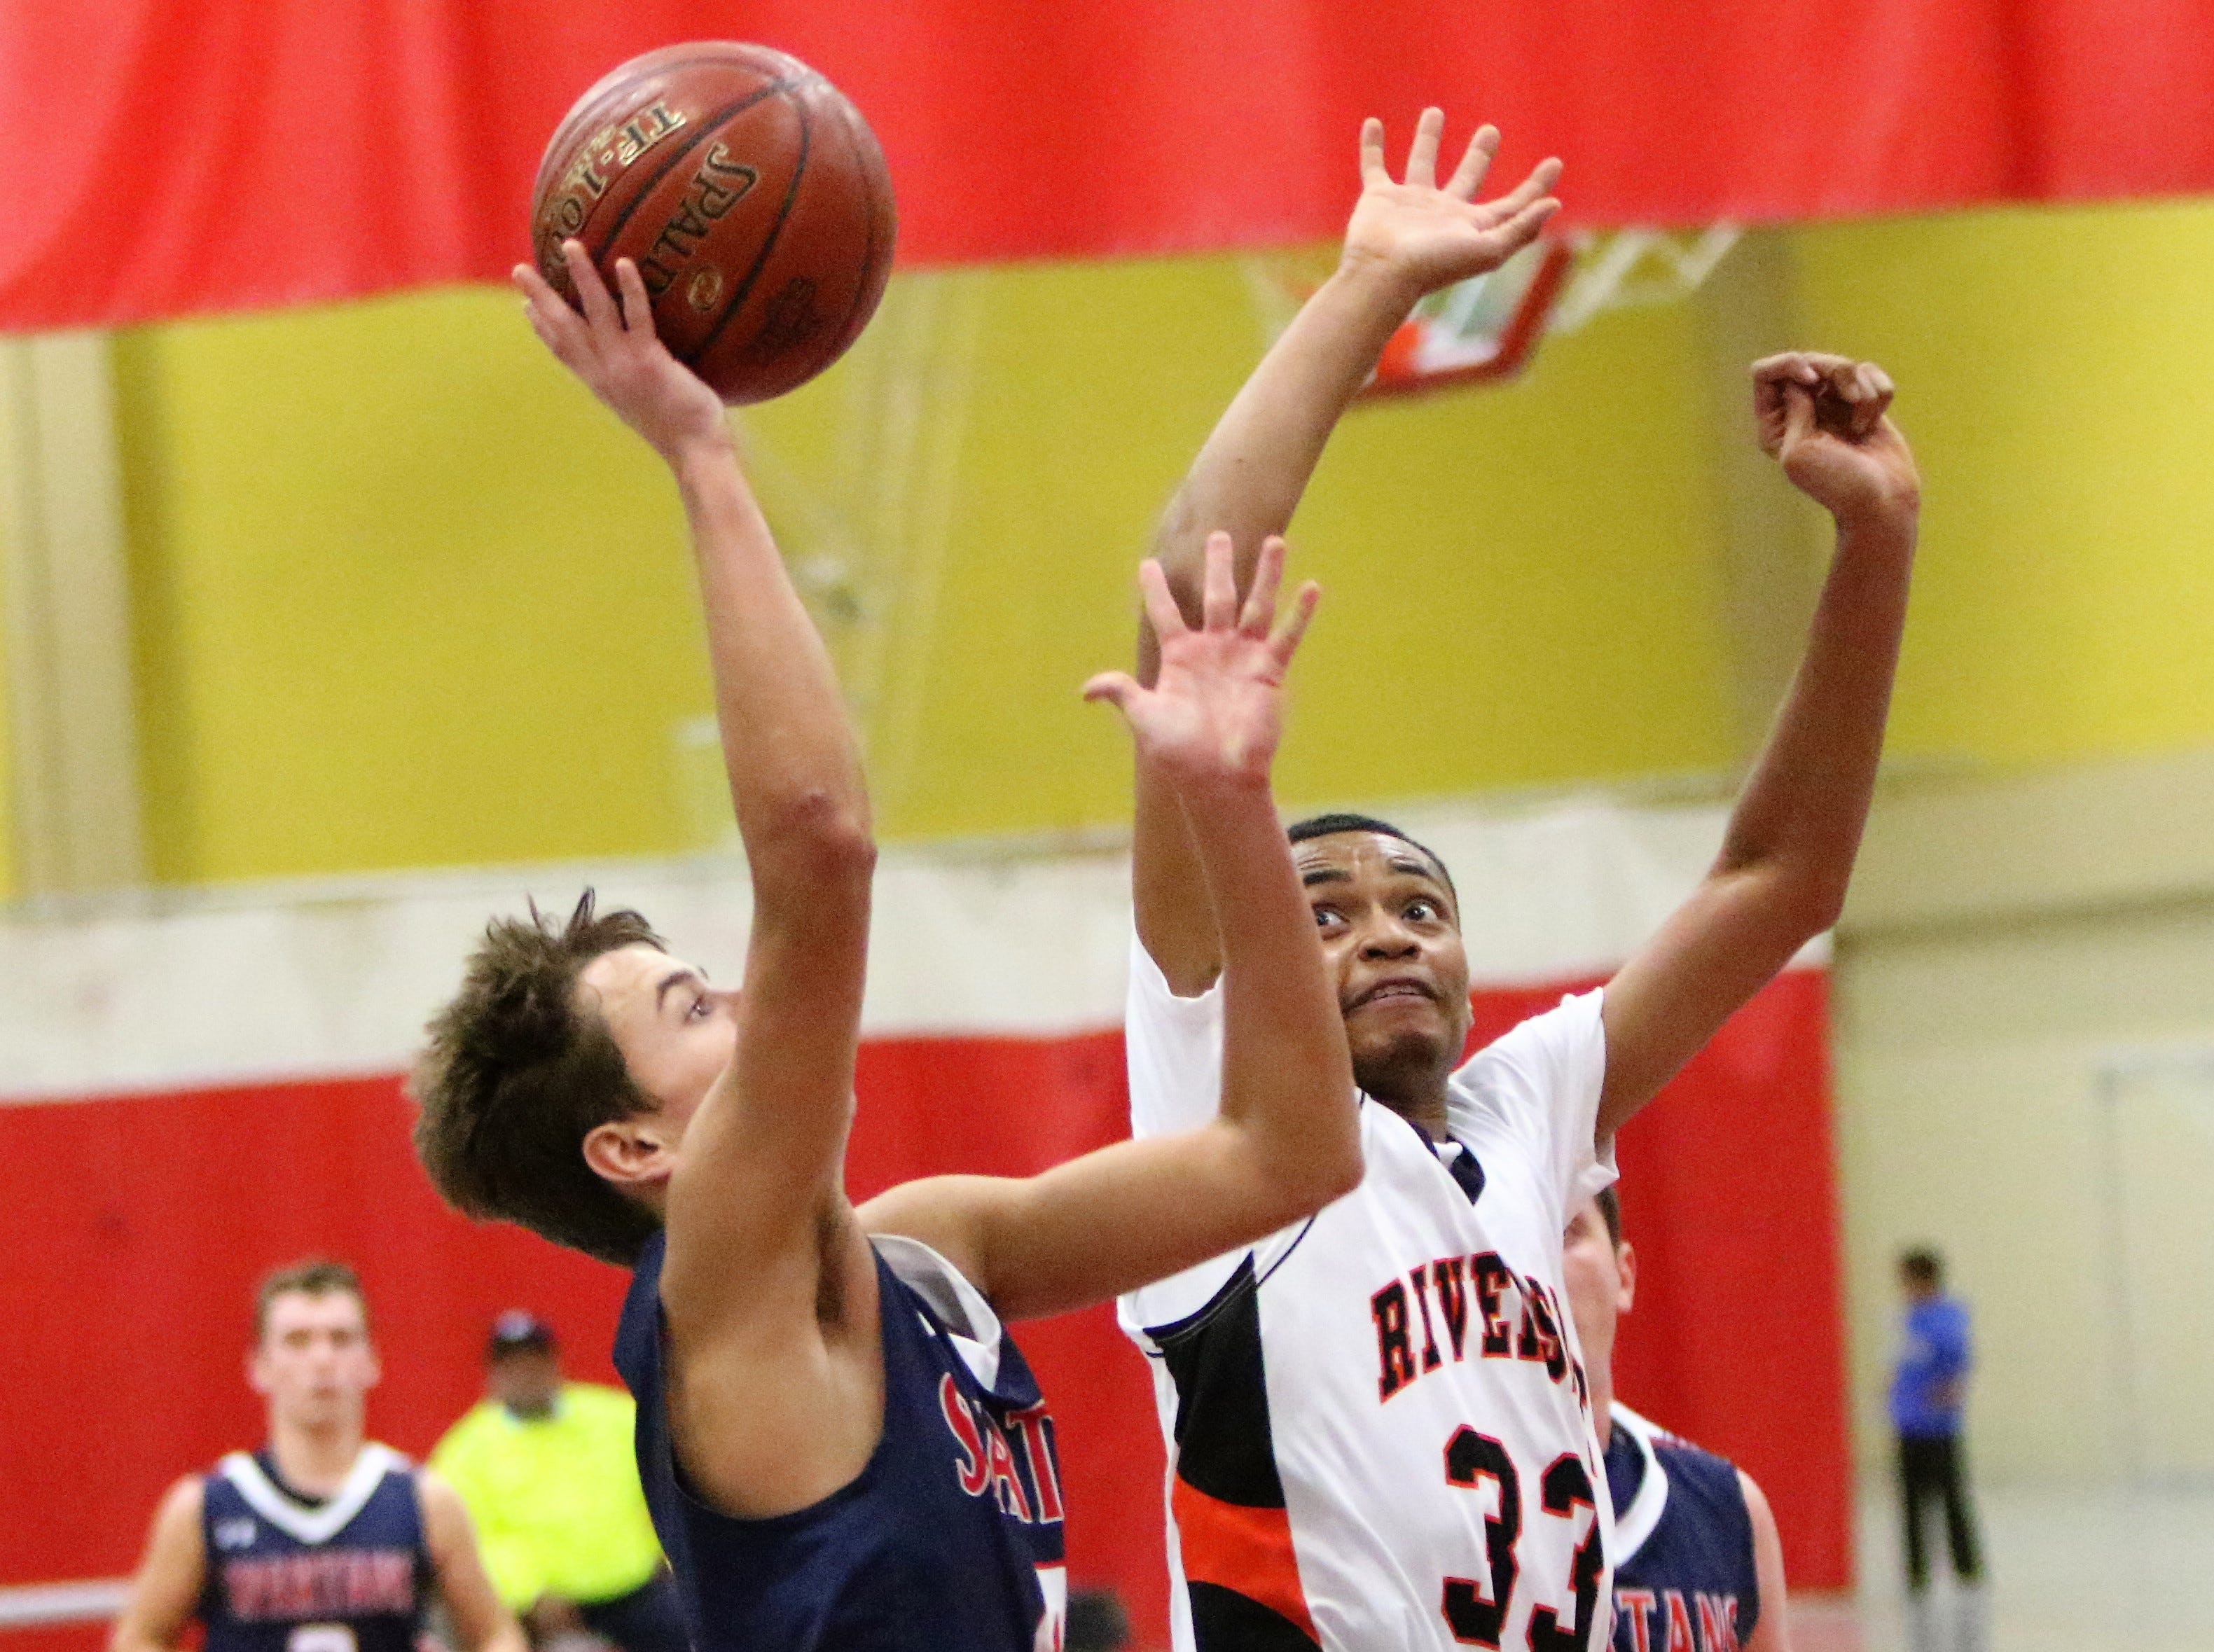 Milwaukee Riverside forward Deandre Algee rises up to block a shot against Brookfield East during the Terry Porter Classic on Saturday.